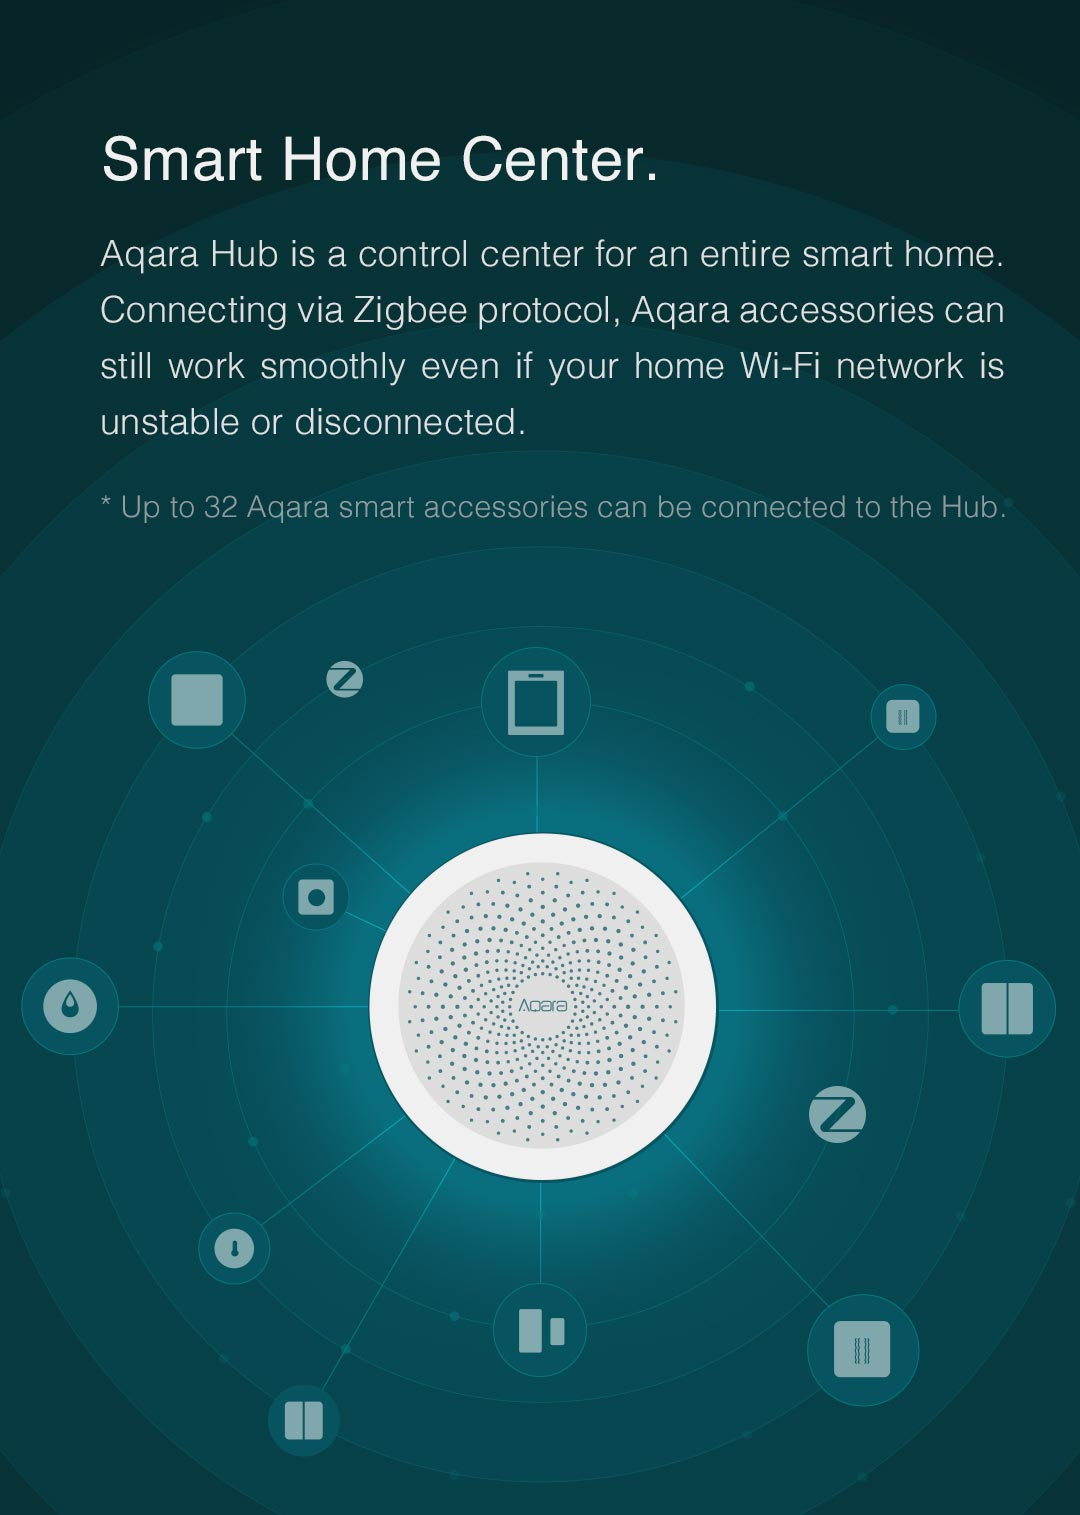 Aqara Hub is a Zigbee control gateway for a smart home. Aqara accessories can work even if network is disconnected